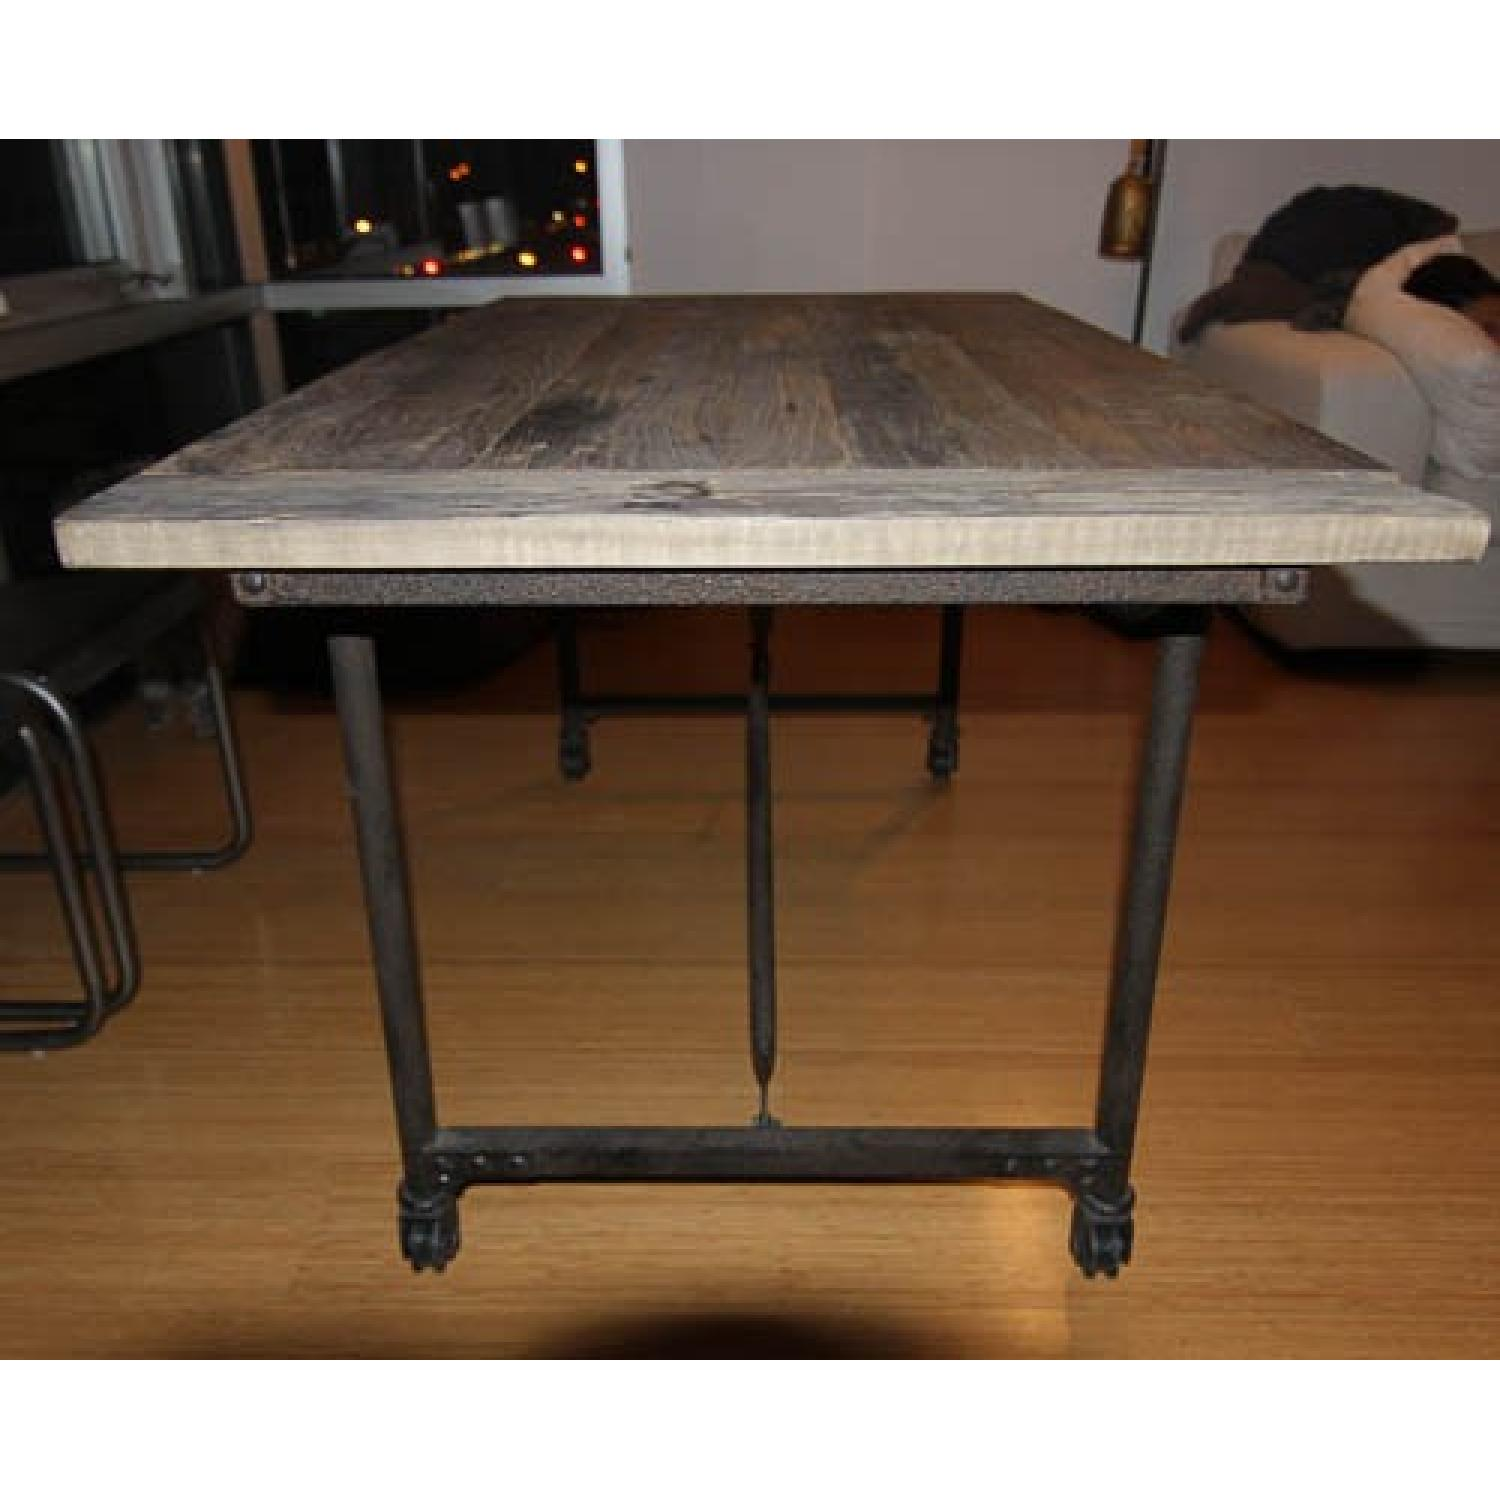 Restoration Hardware Flatiron Rectangular Dining Table - image-3